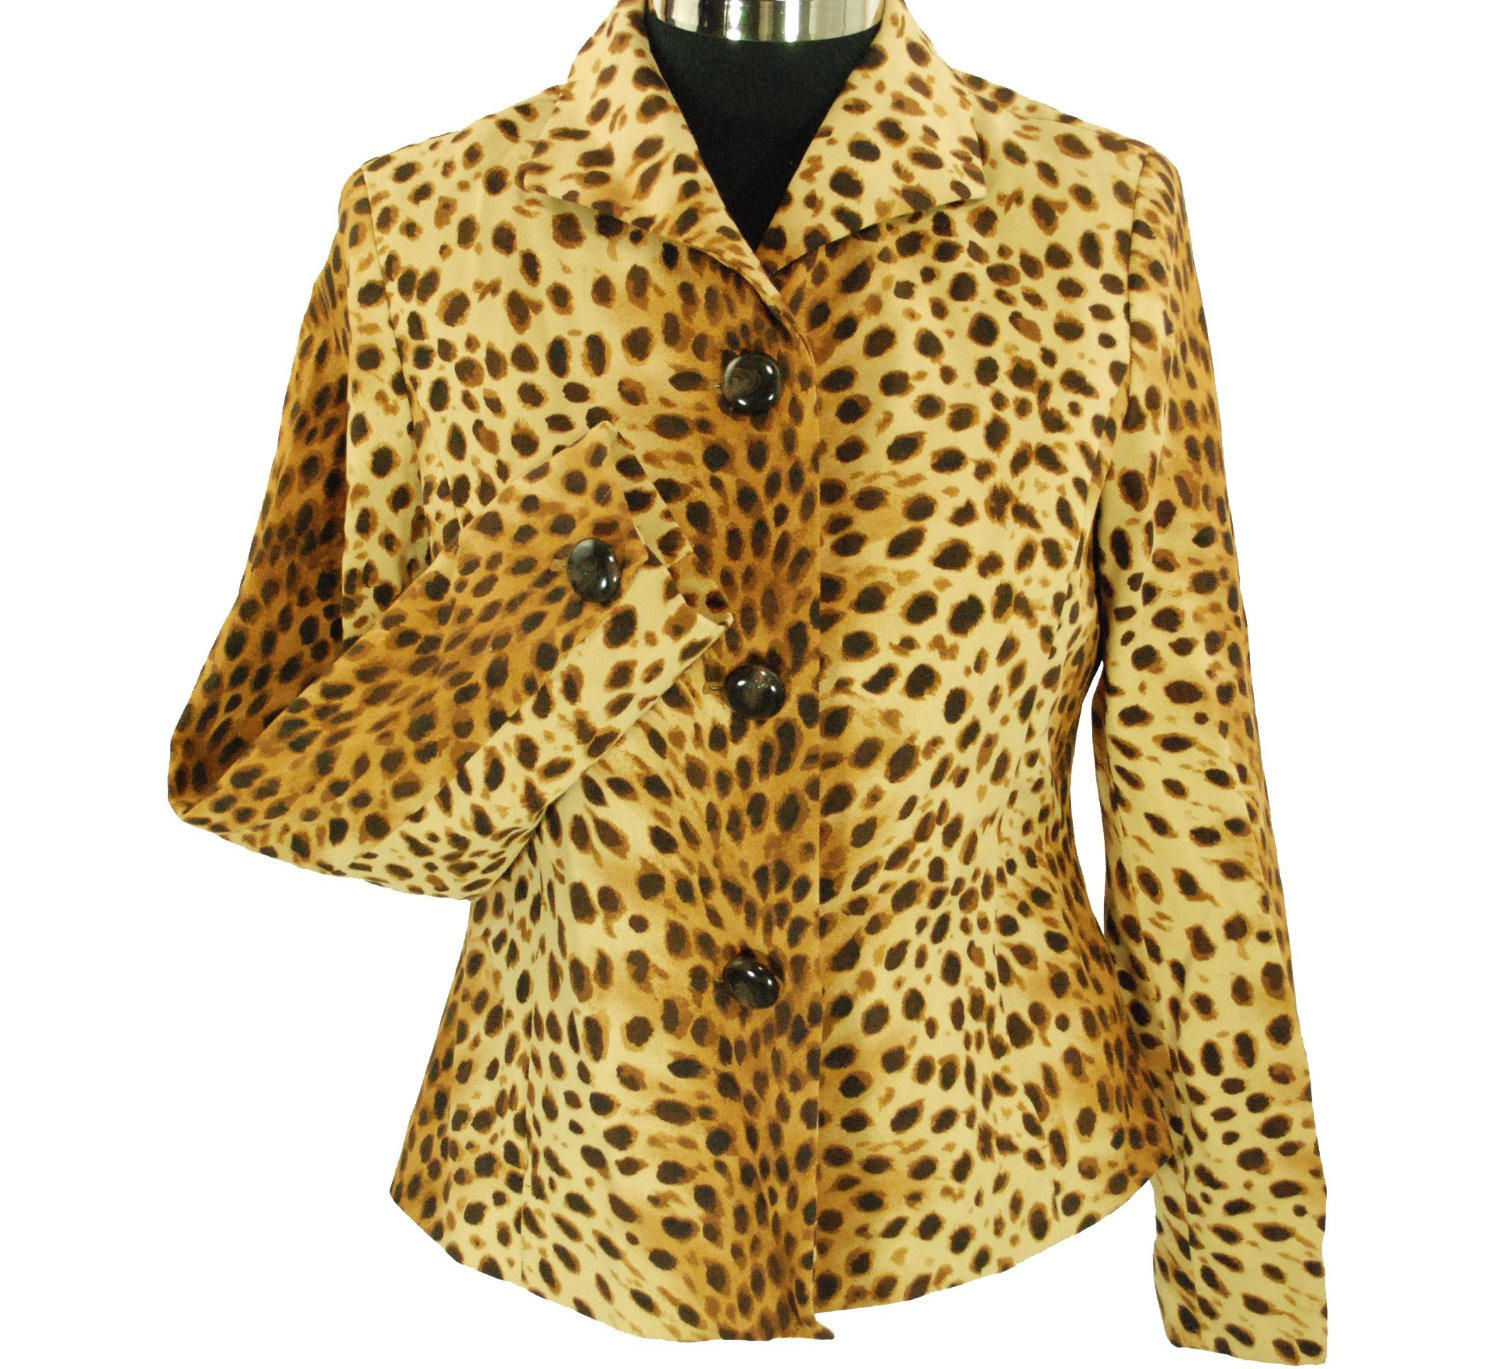 Jones New York Women's Leopard Print Jacket